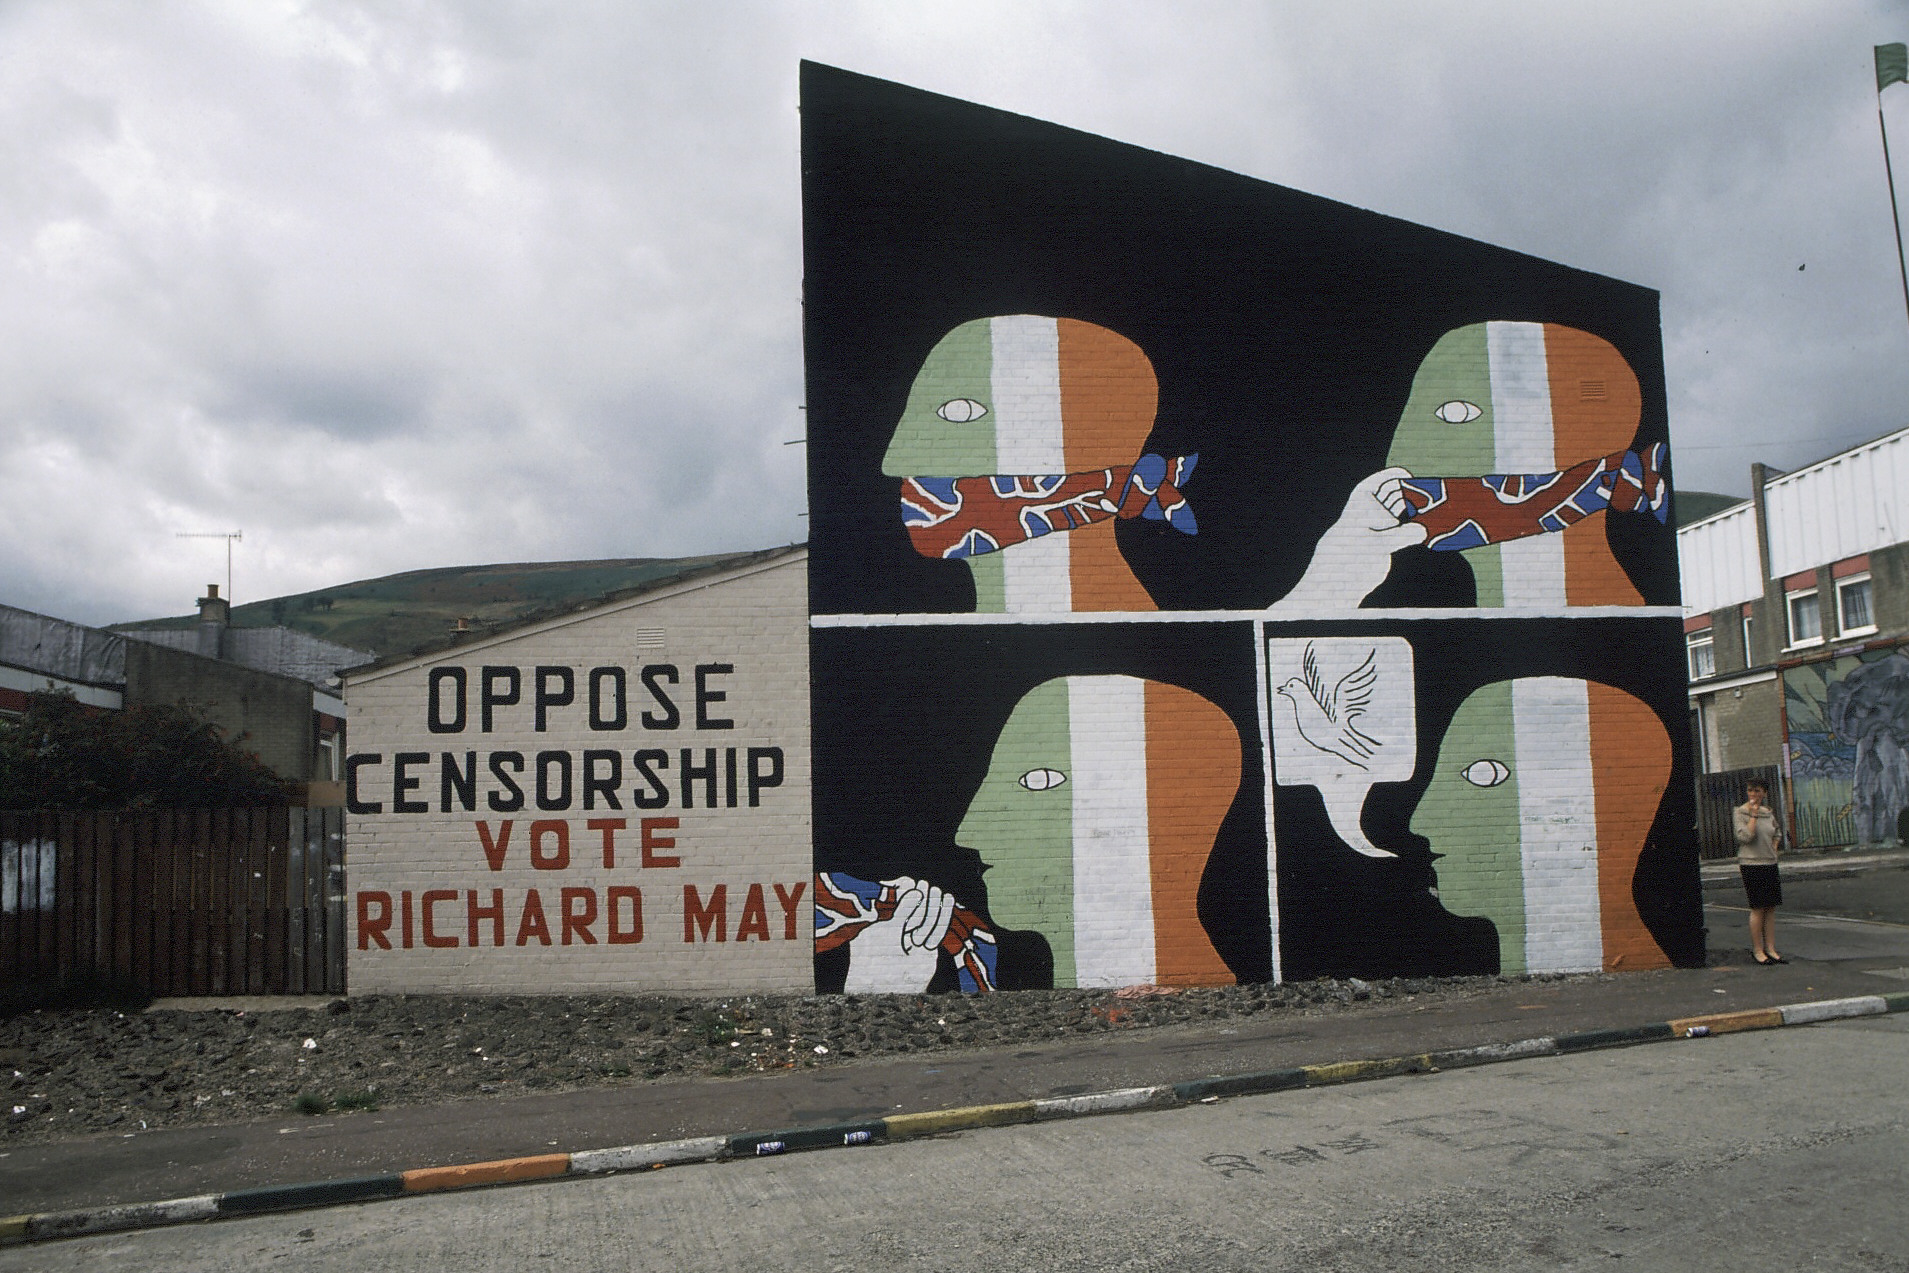 A Belfast mural referring to the 1988 Broadcast Ban